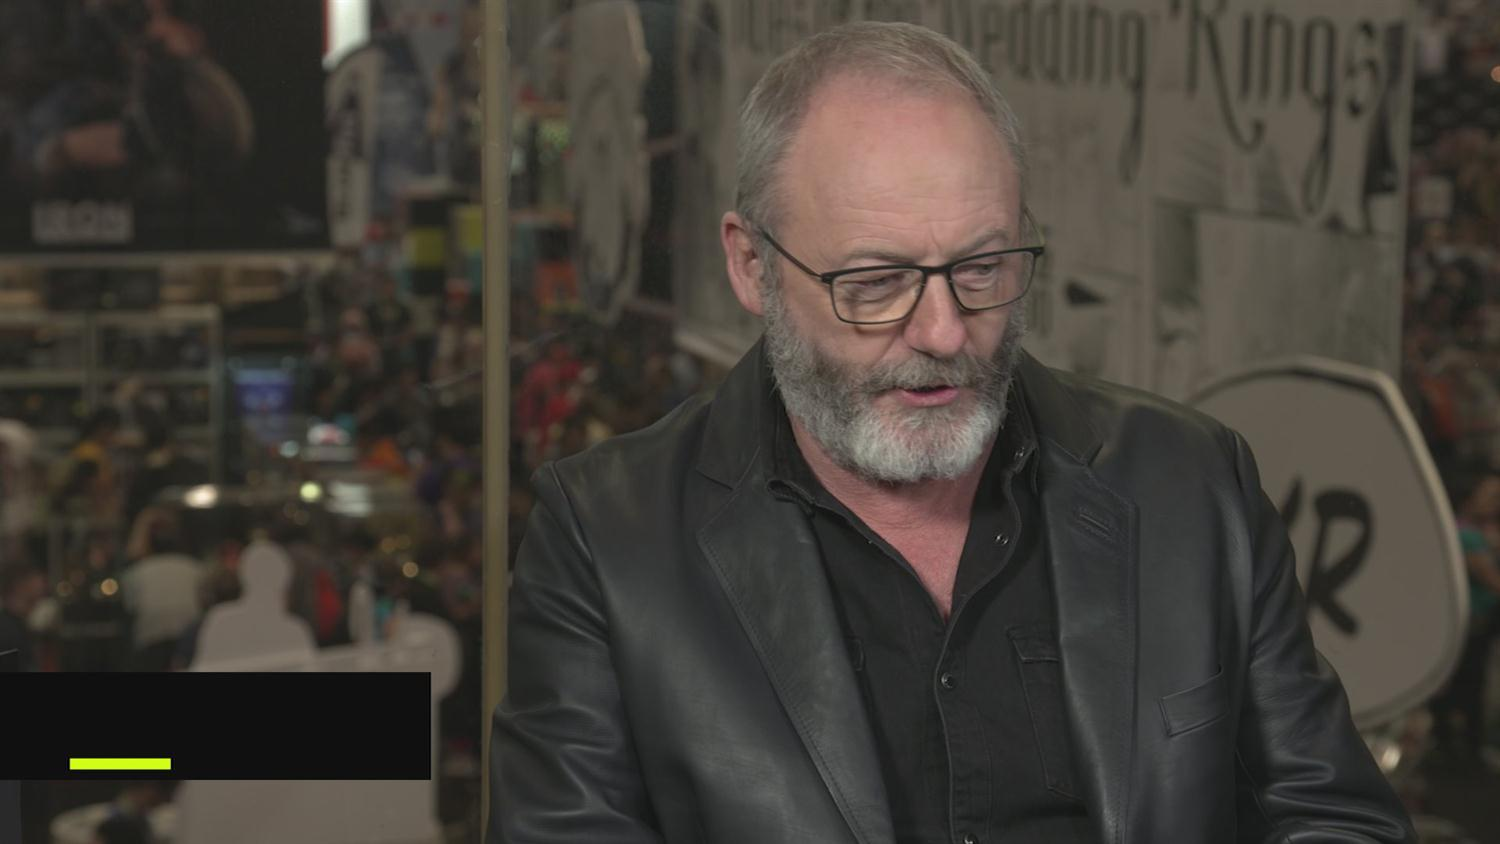 Game of Thrones' Davos Seaworth on What He's Taken from the Game of Thrones Set